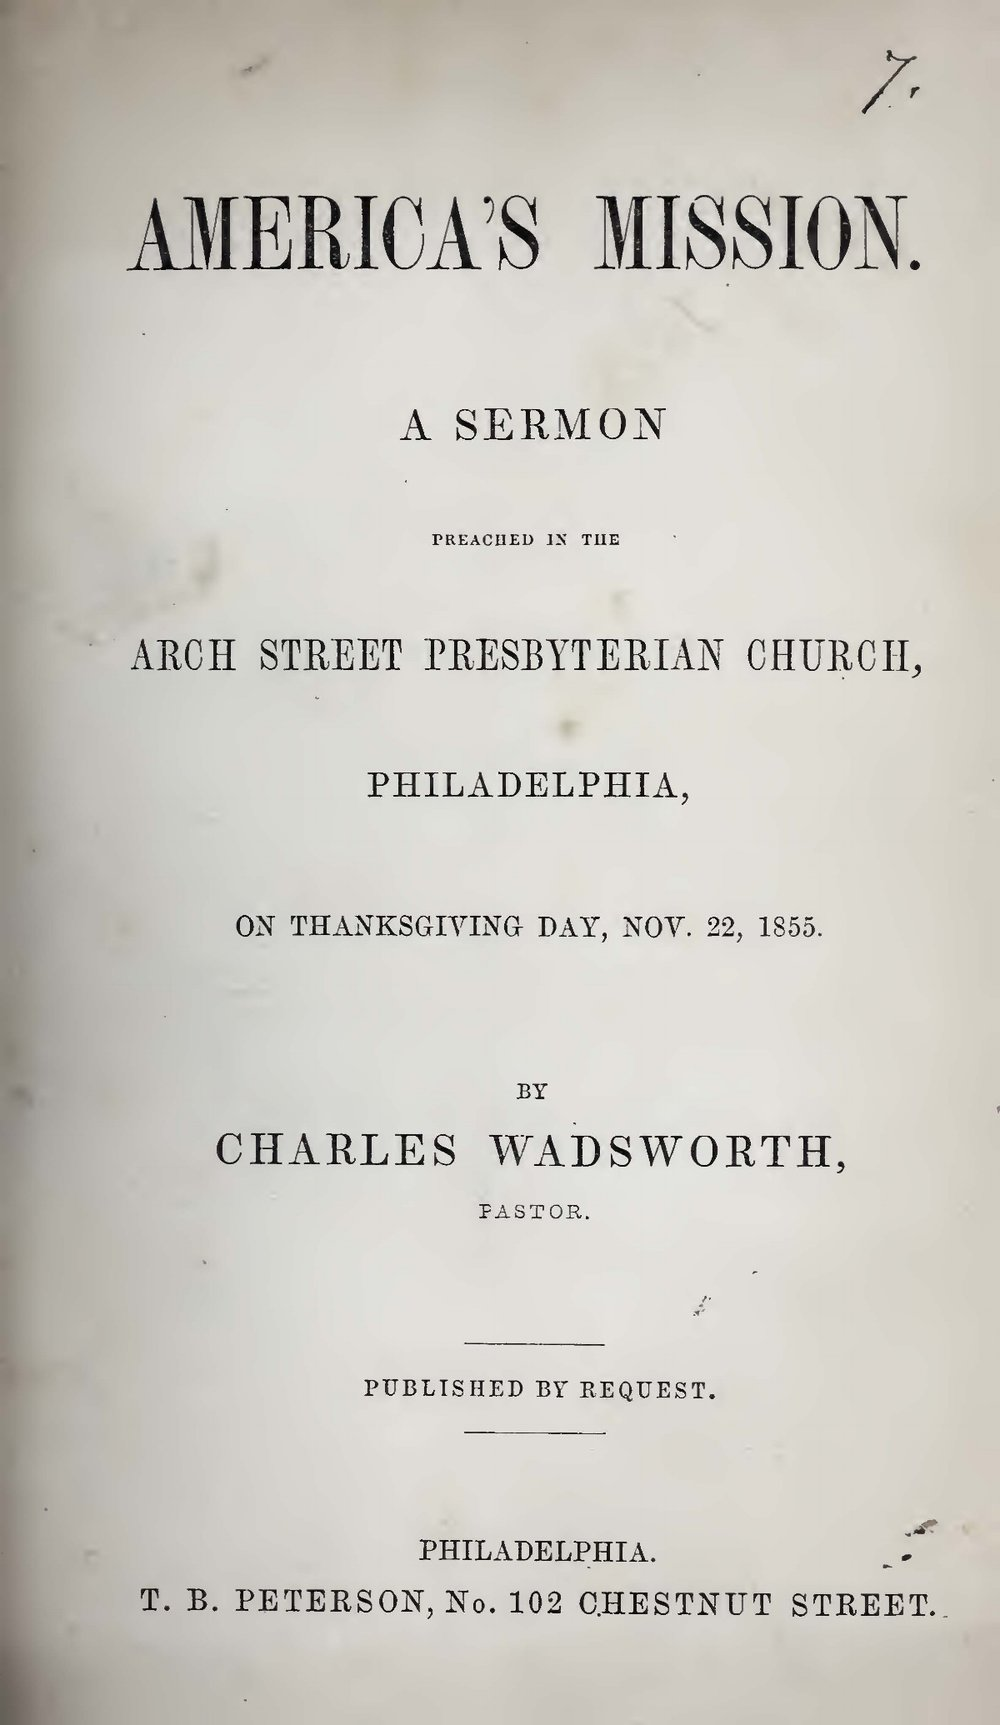 Wadsworth, Charles, America's Mission Title Page.jpg